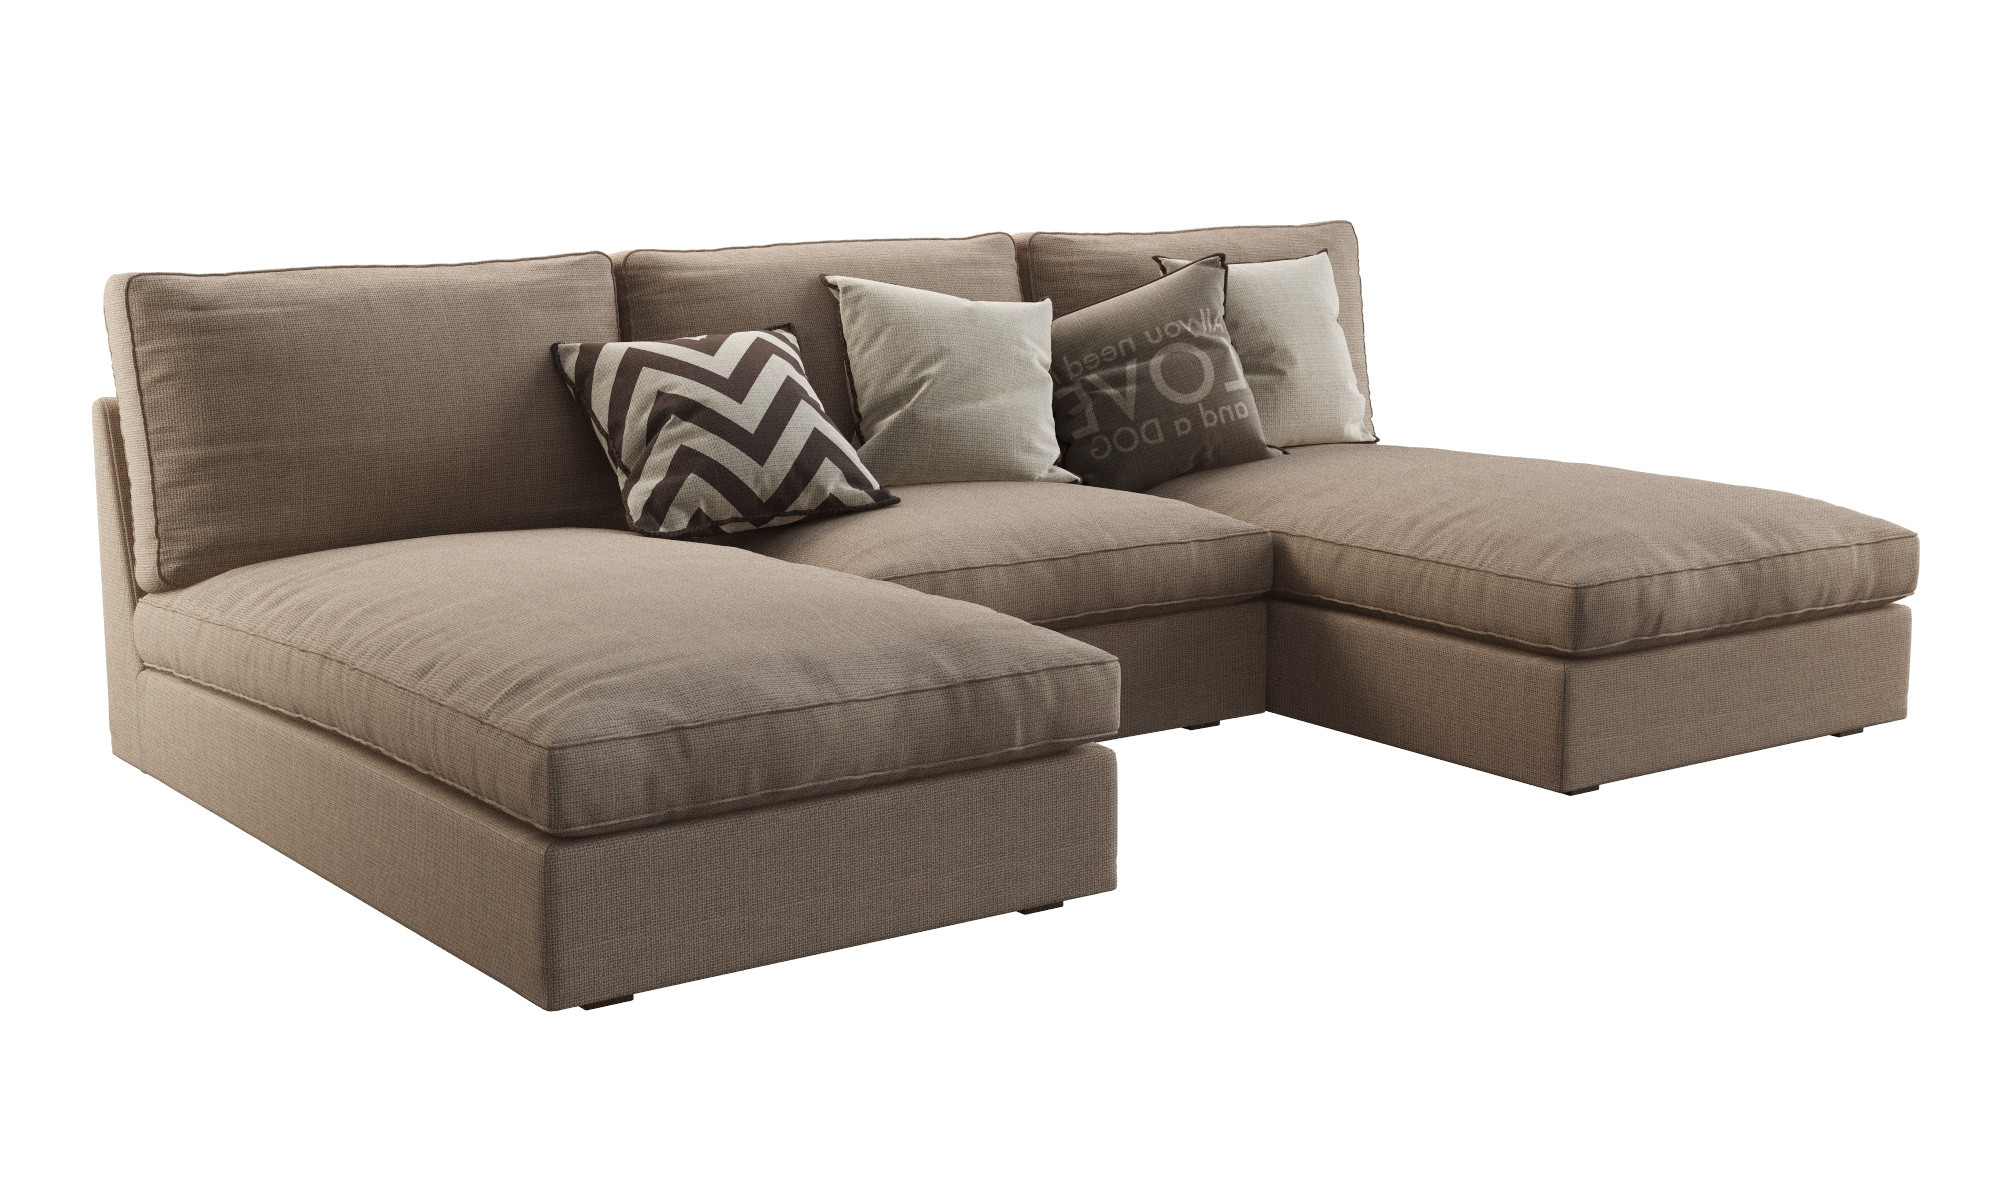 Ikea Chaise Lounge – Ikea Chaise Lounge Covers, Ikea Poang Chair With Trendy Ikea Chaise Lounge Chairs (View 11 of 15)